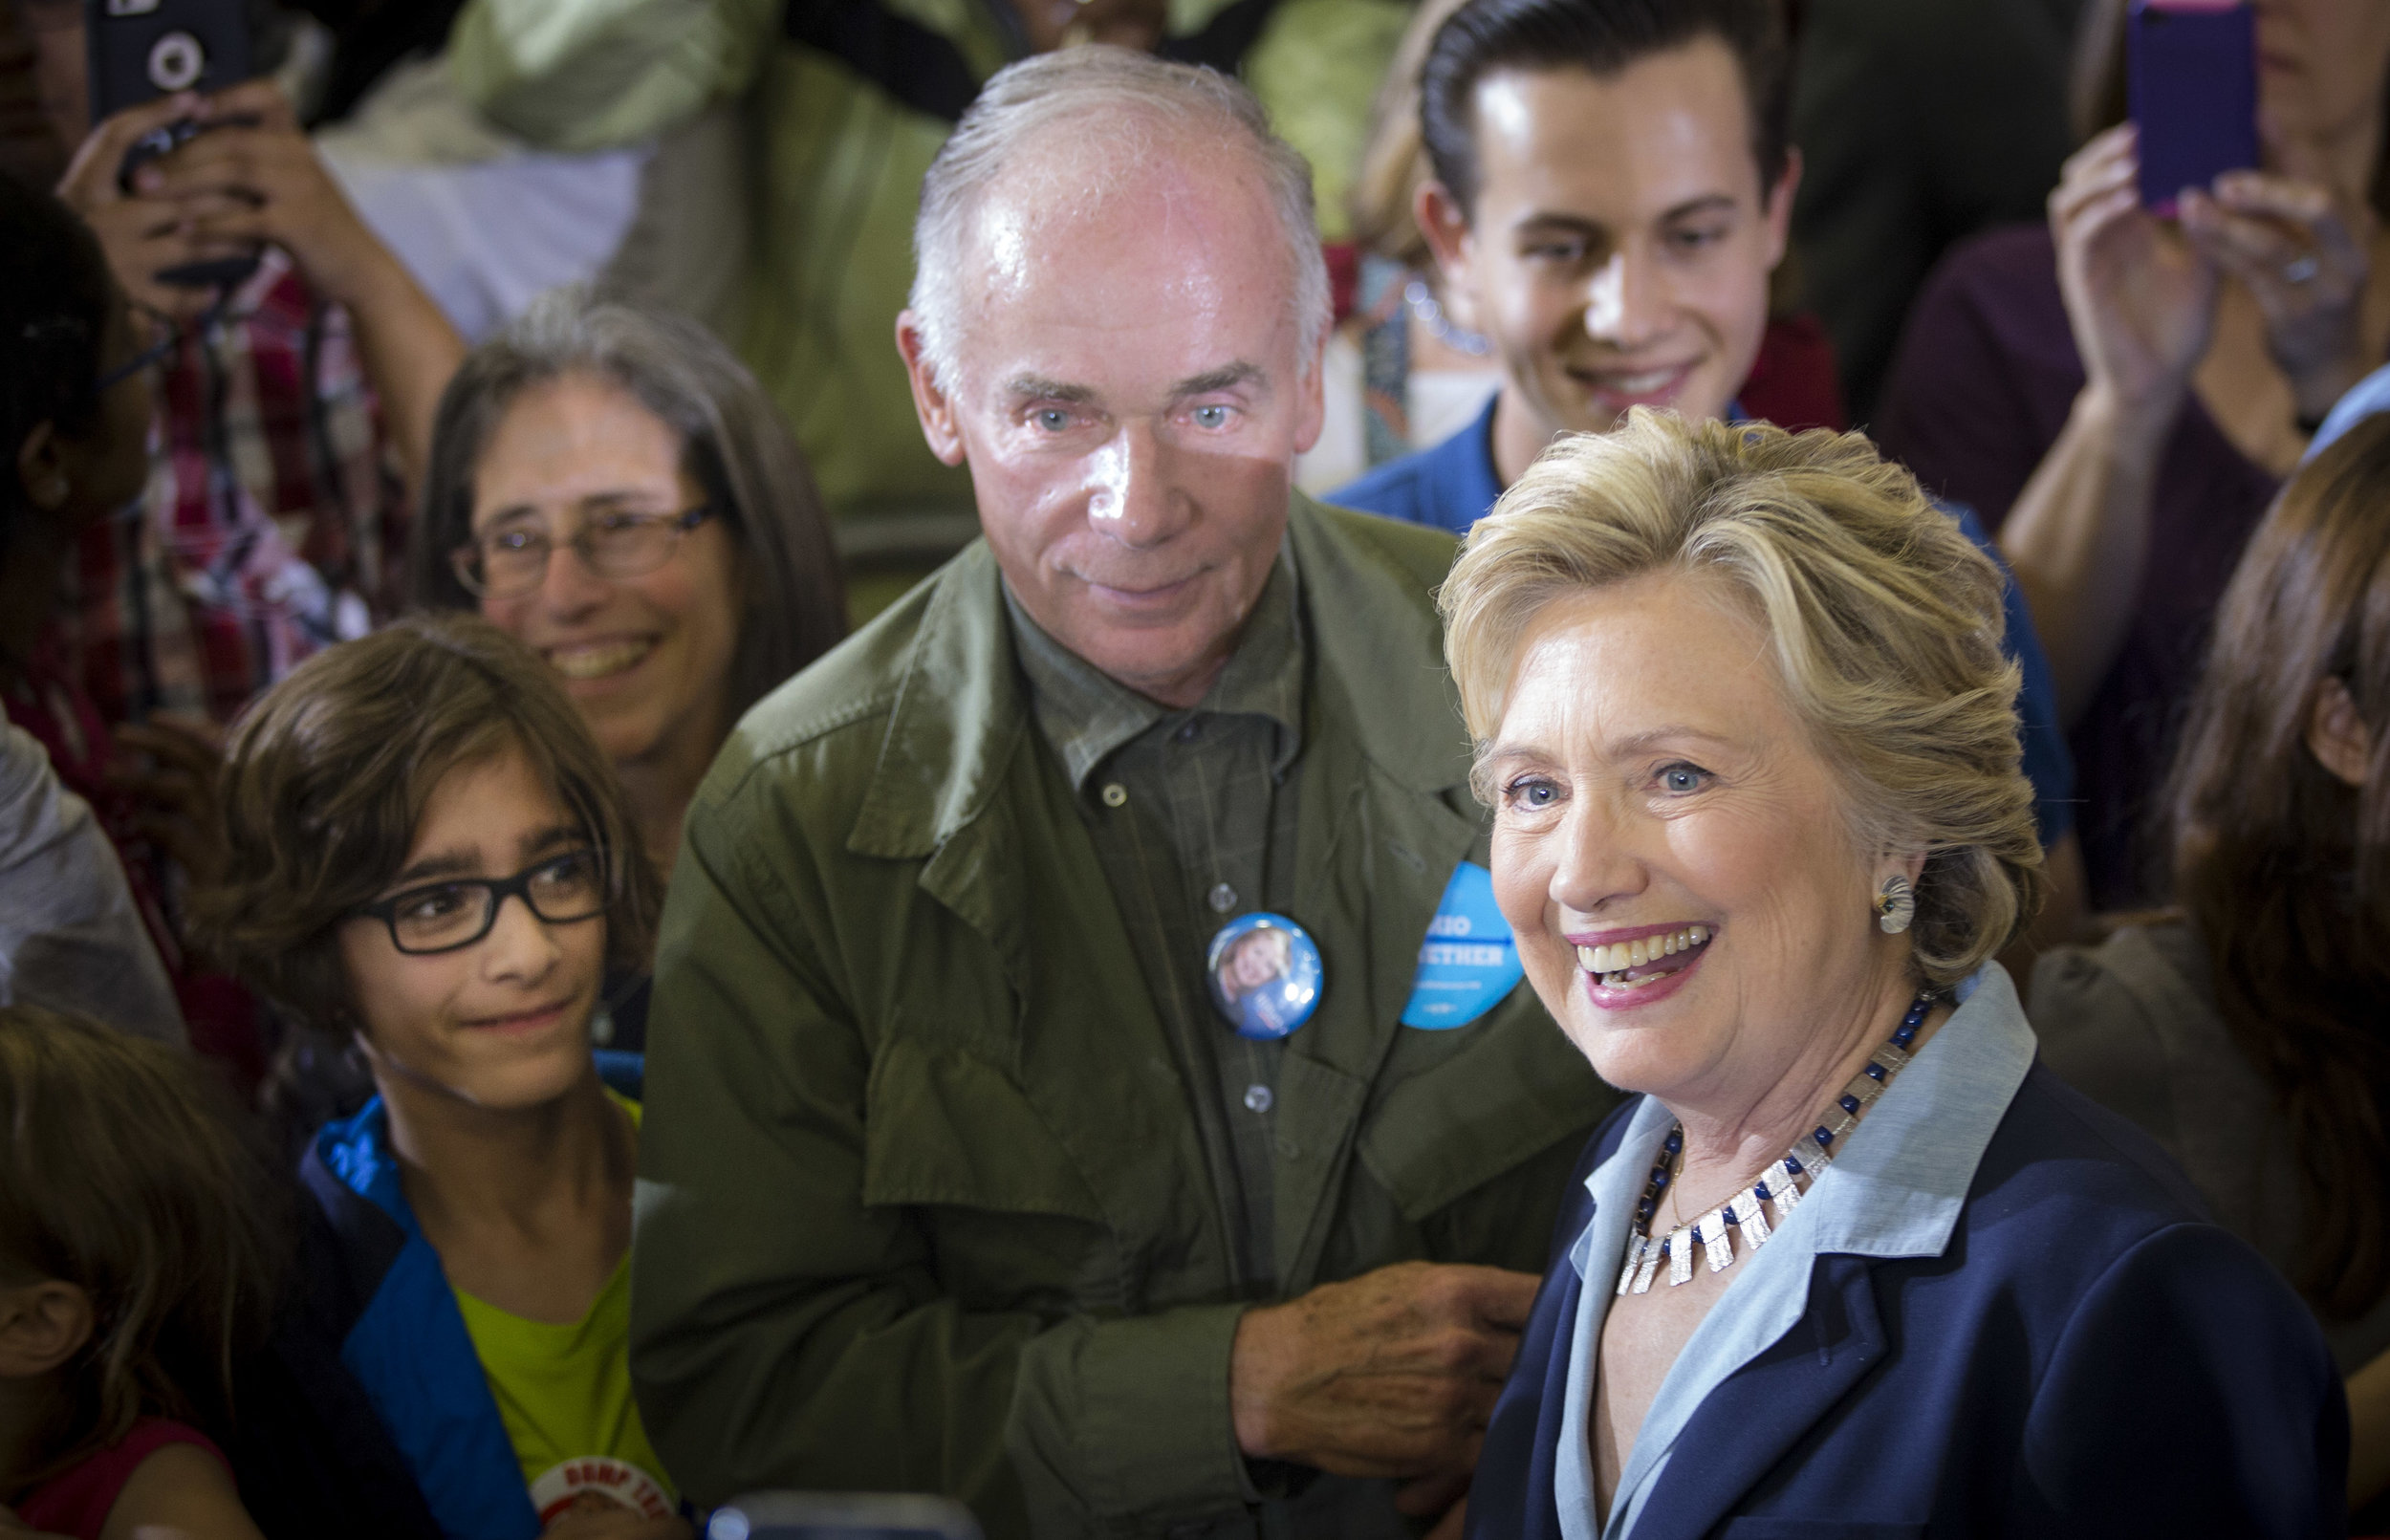 10032016_BJM_Hillary_Campaigns_in_Akron_Ohio_51.jpg